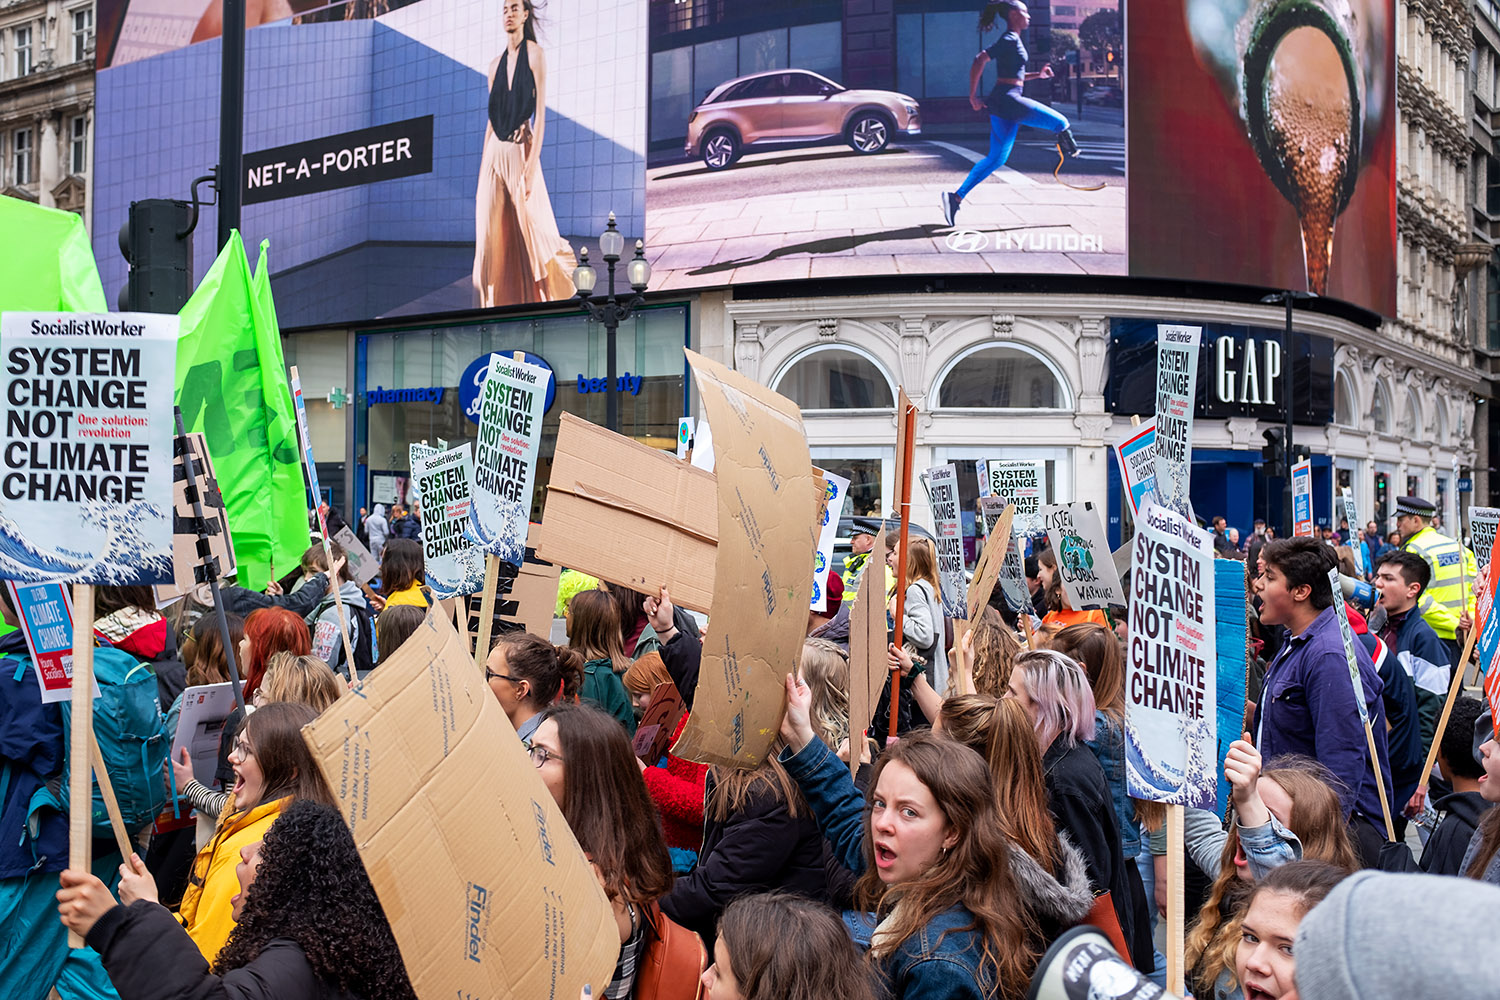 Climate Change protest in London.